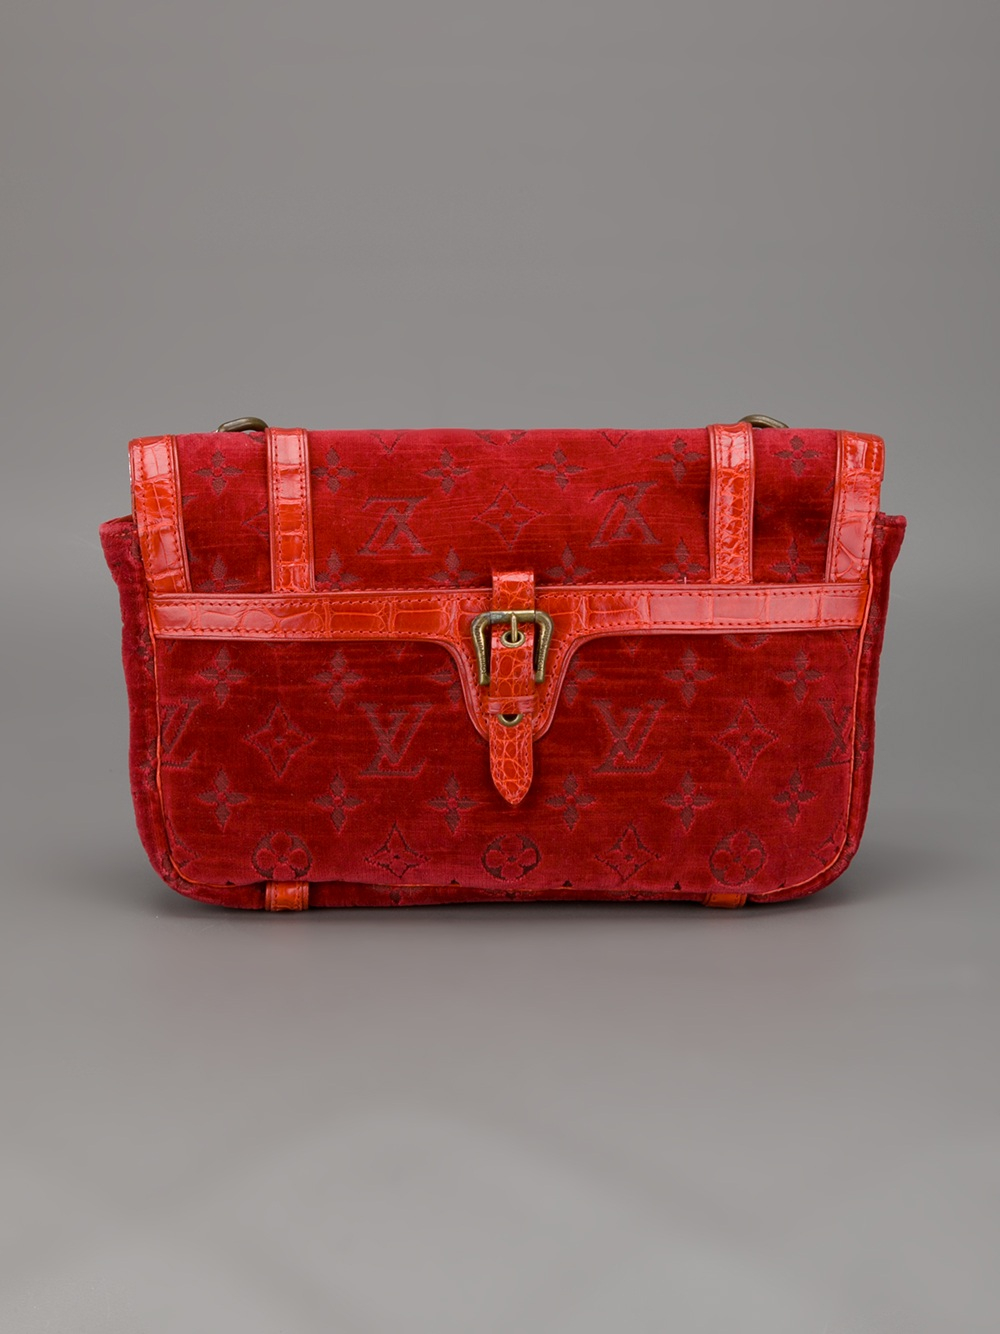 Louis Vuitton Limited Edition Bag in Red